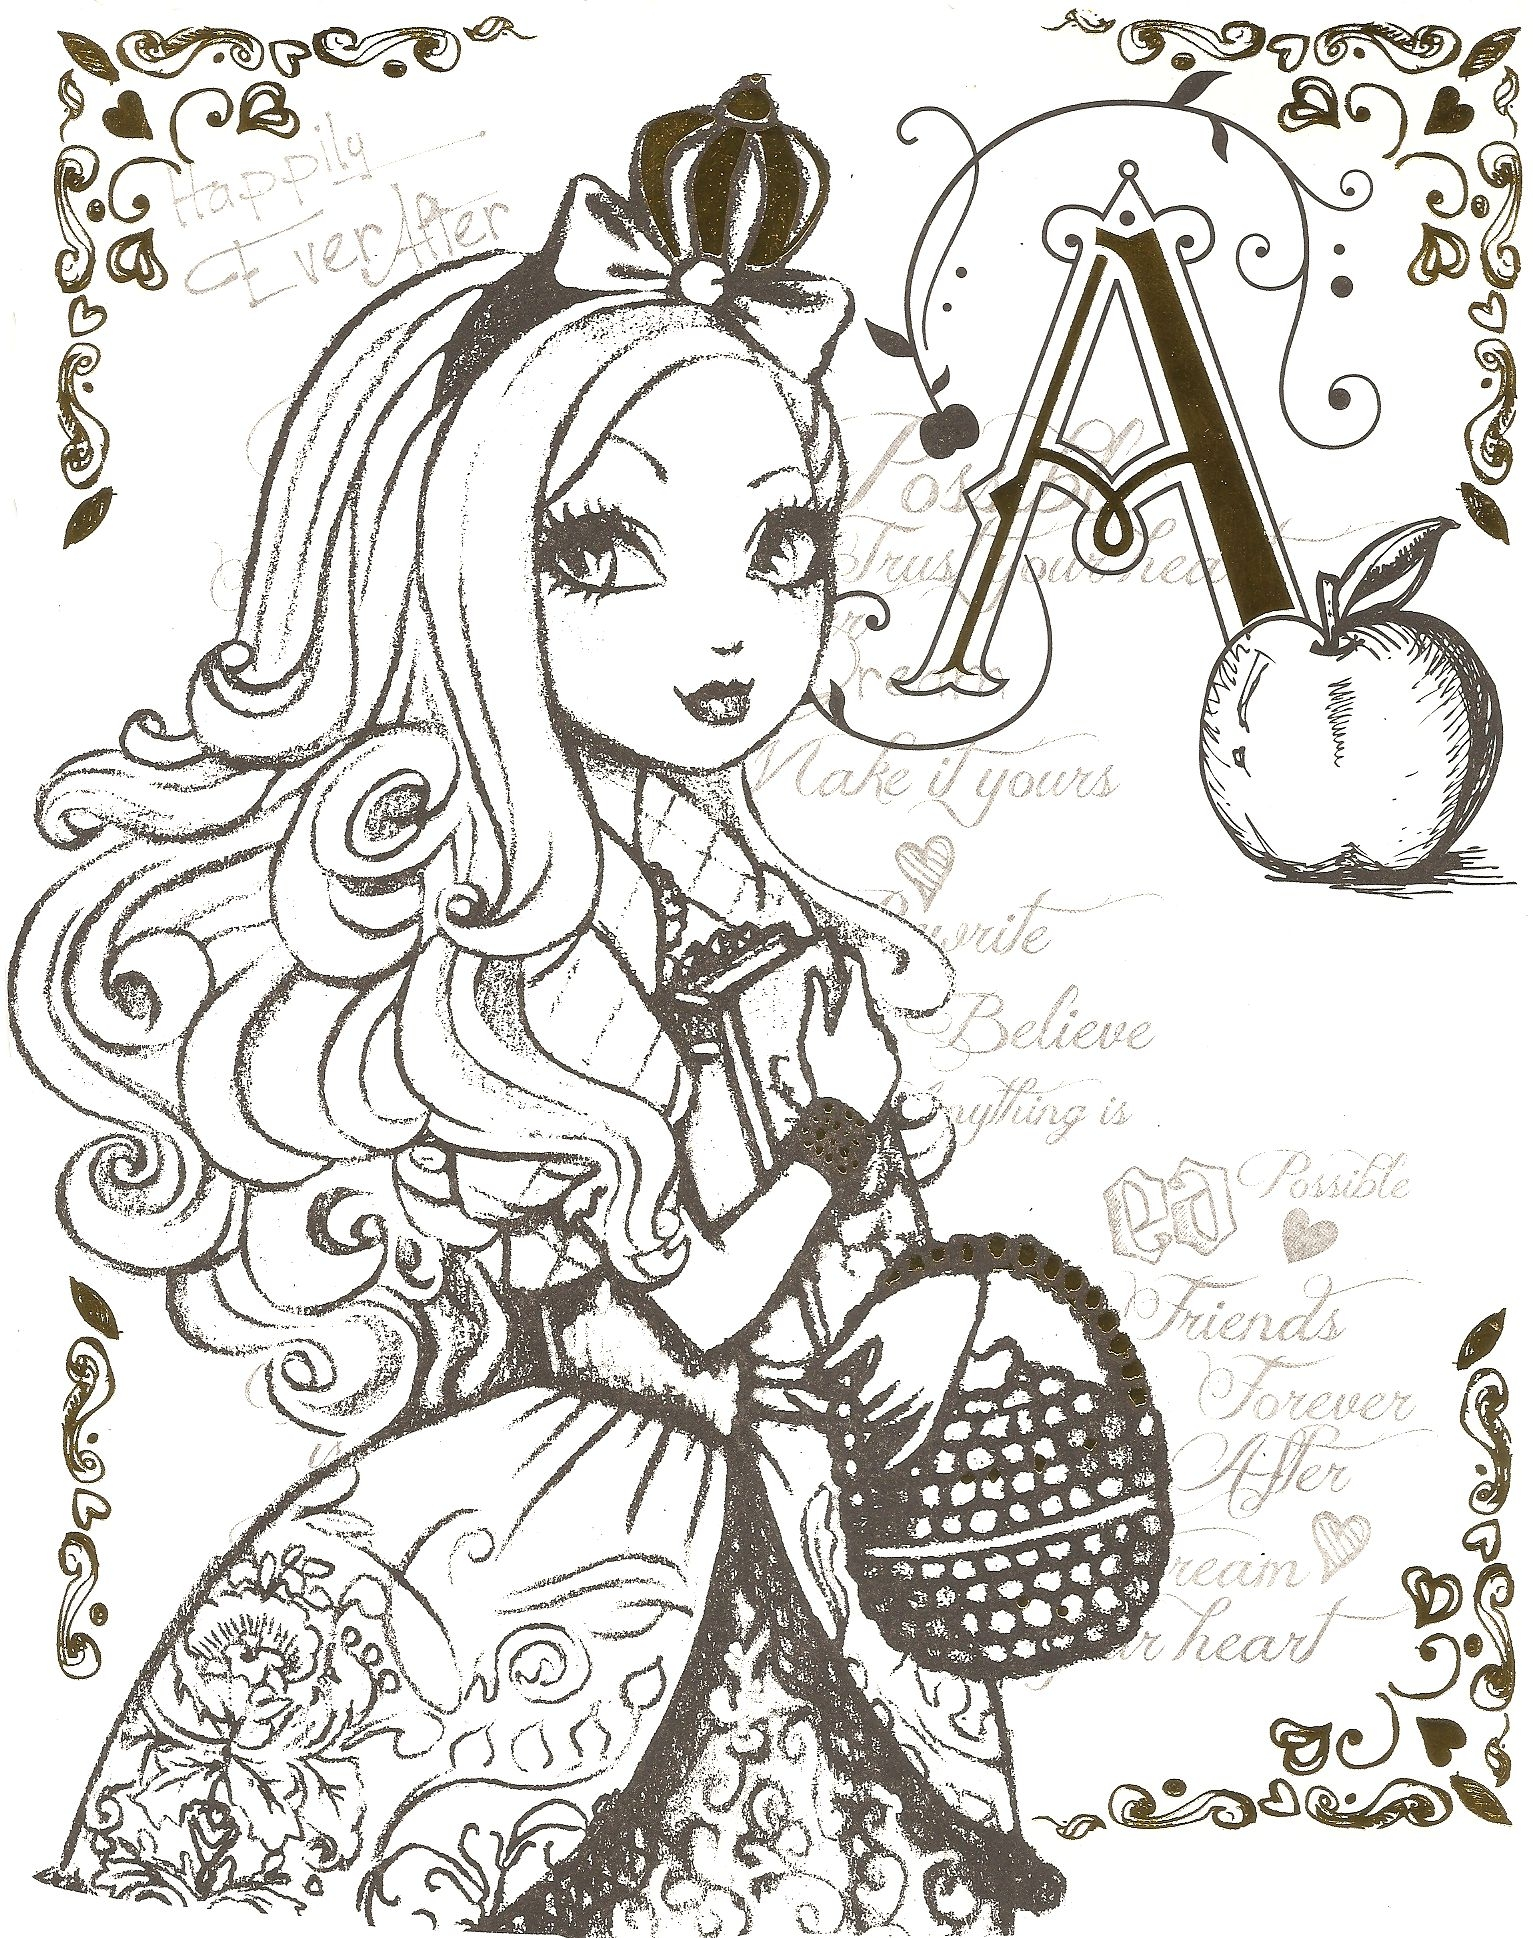 ever after high coloring pages - collectionedwn ever after high madeline hatter coloring pages